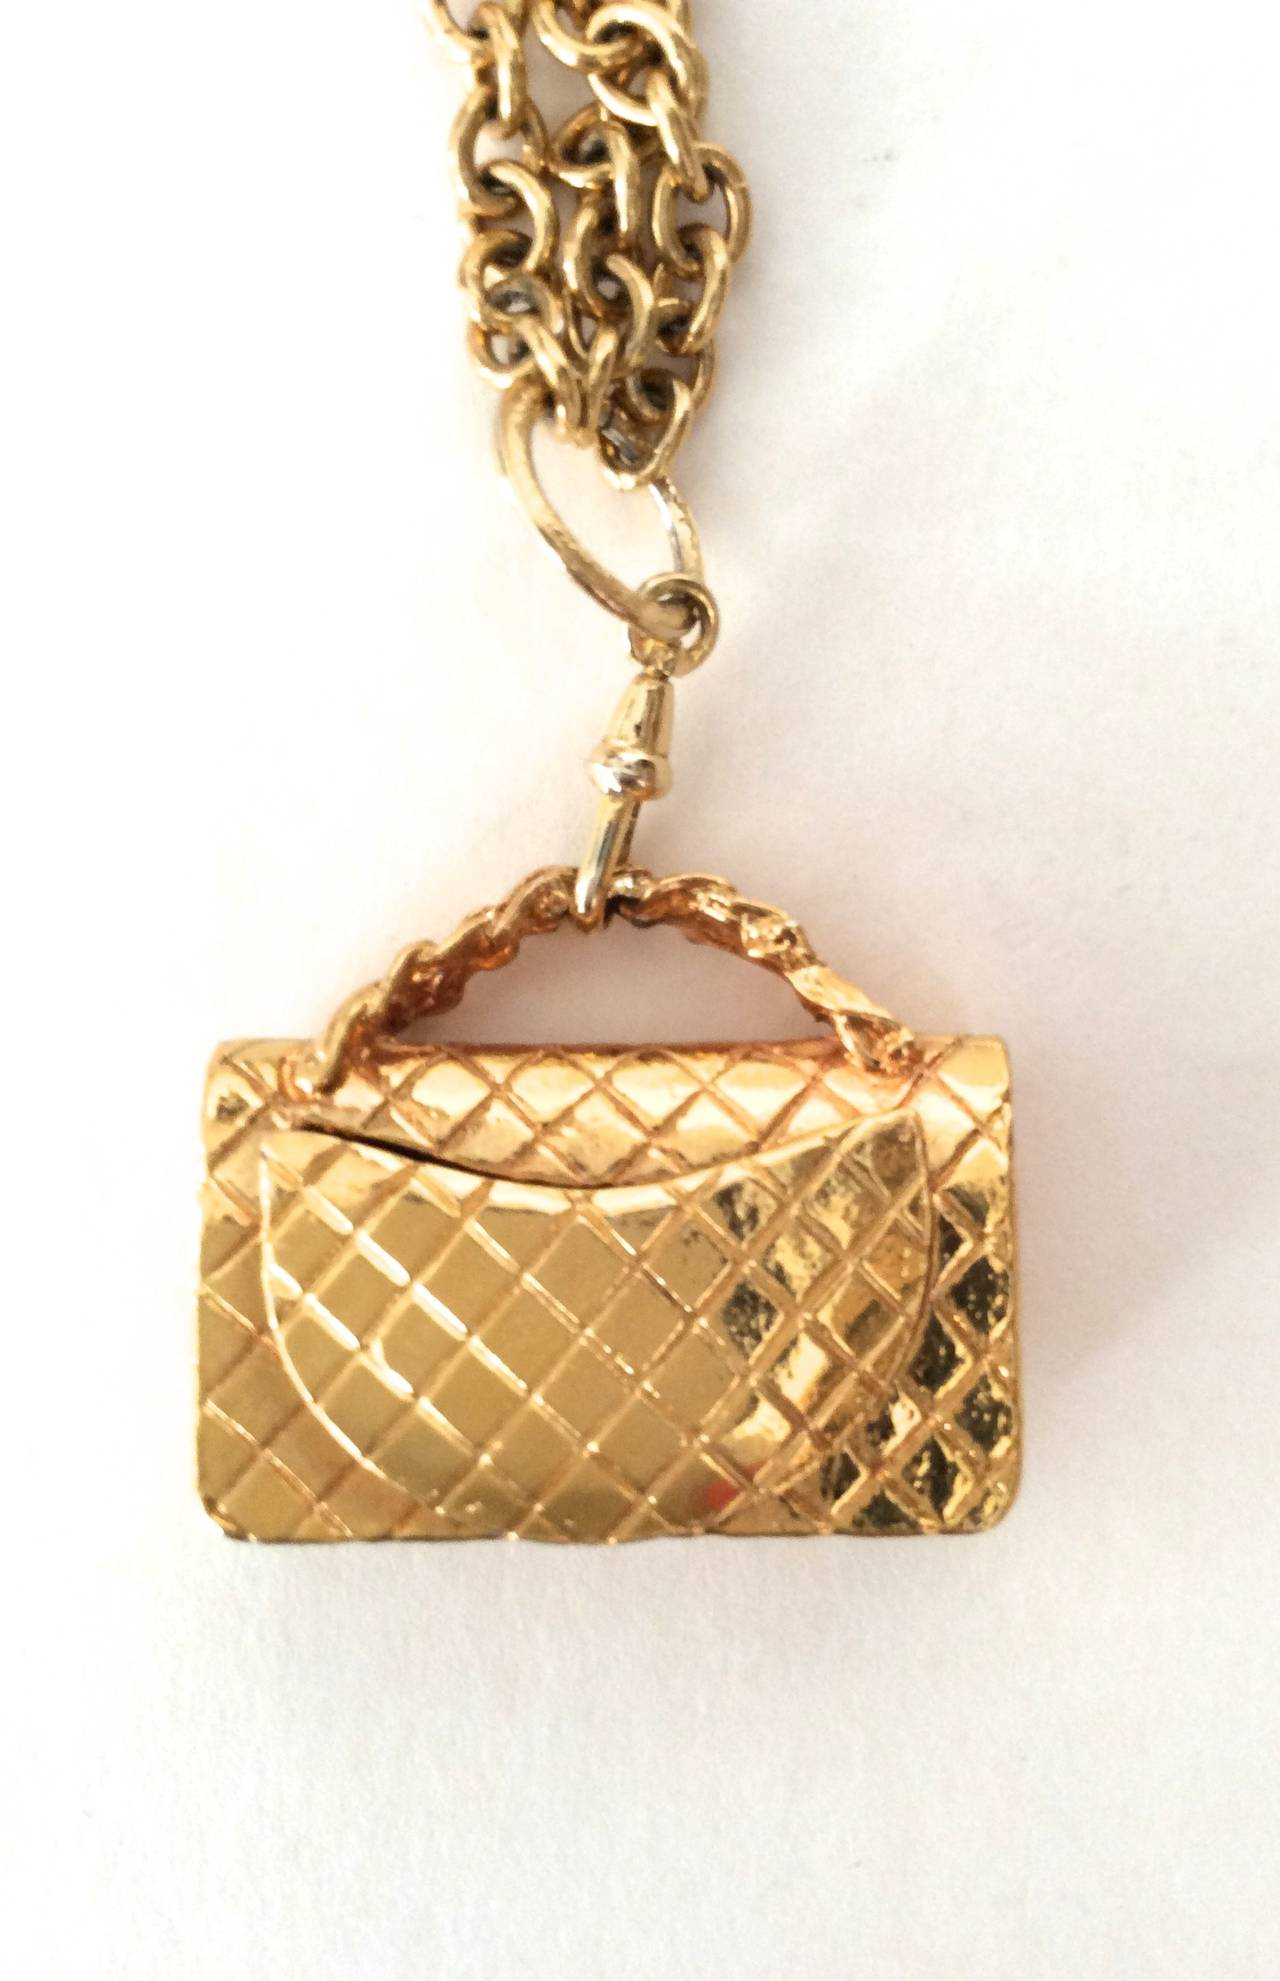 Gold Tone Chanel Triple Chain Necklace with Iconic Purse Pendant 2